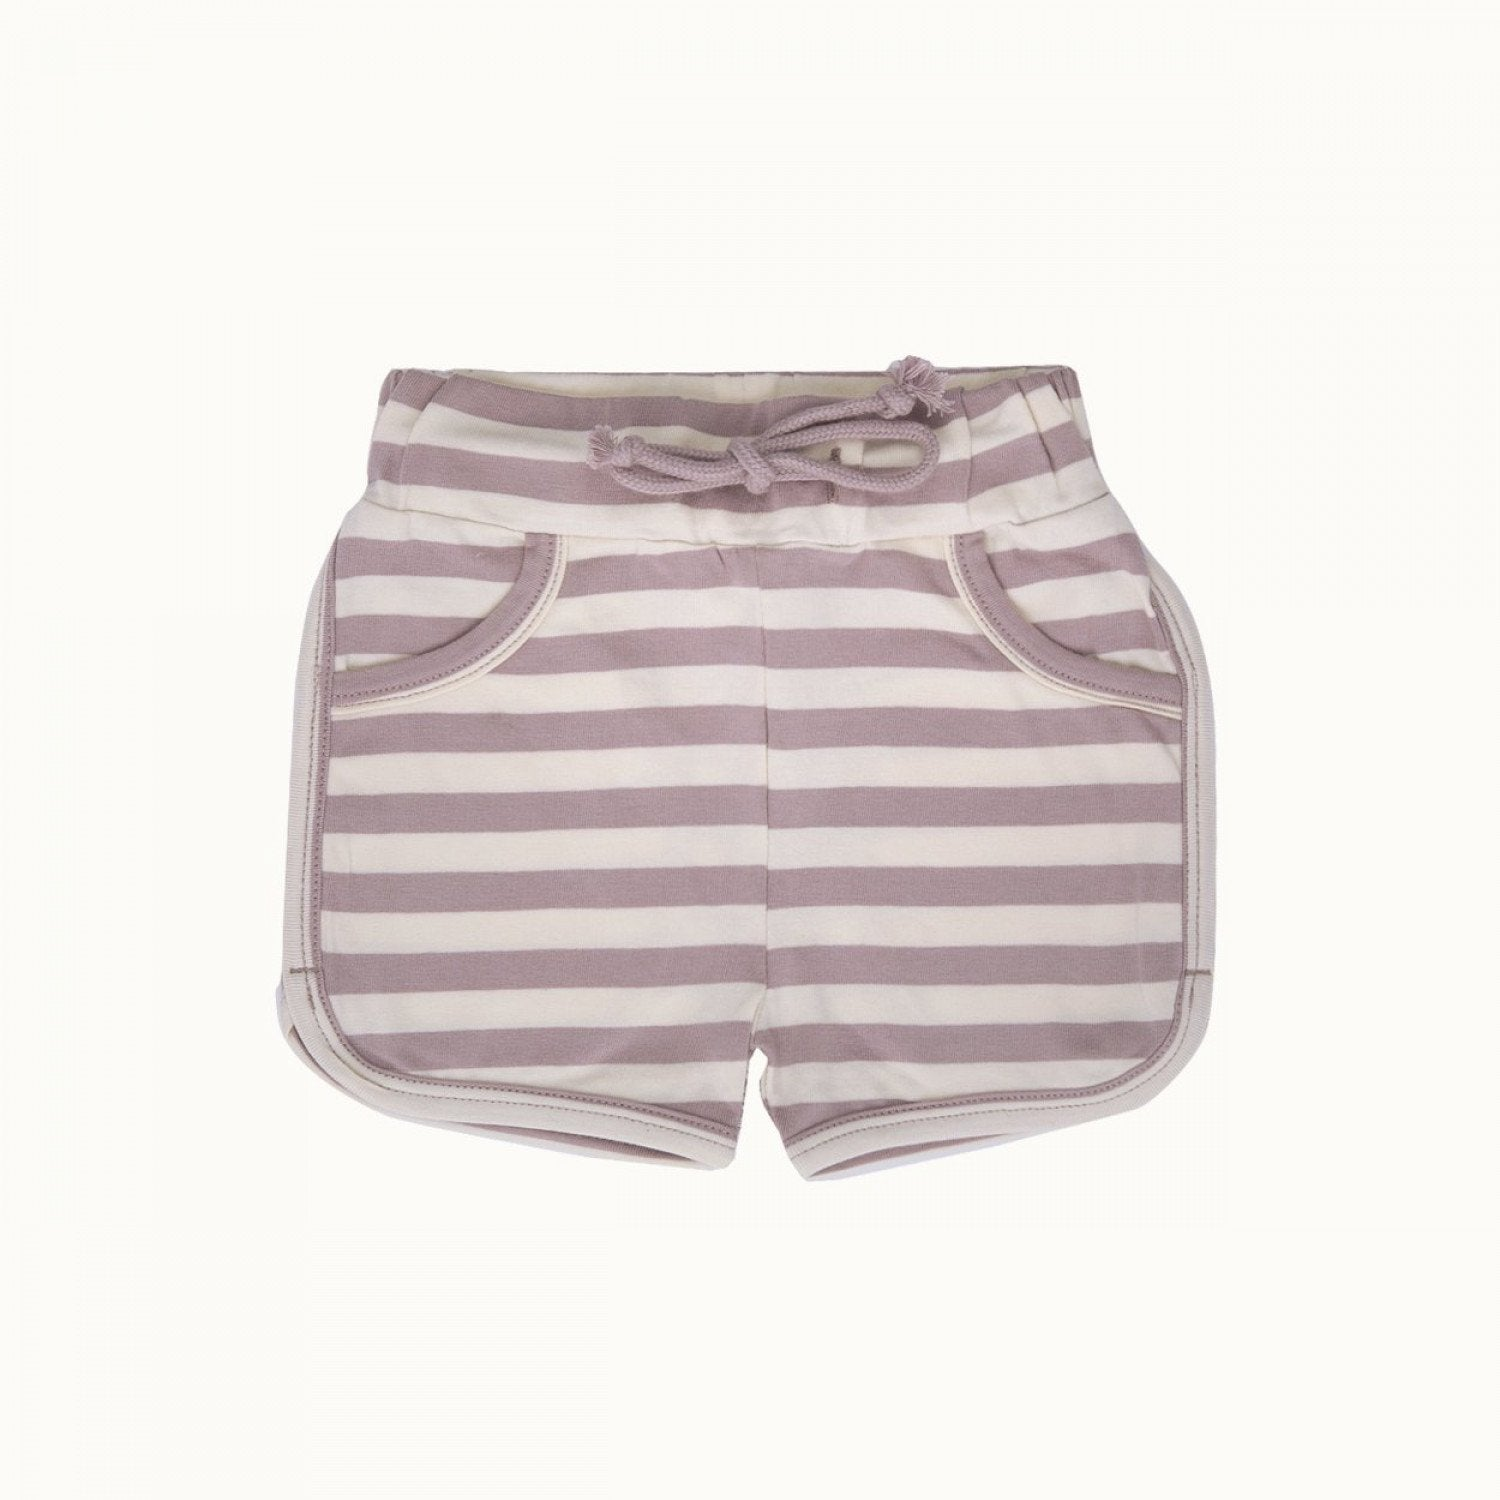 Lilac Sea Stripe / 1 Year Nature Baby Organic Cotton Jenny Shorts (Multiple Variants) - Naked Baby Eco Boutique